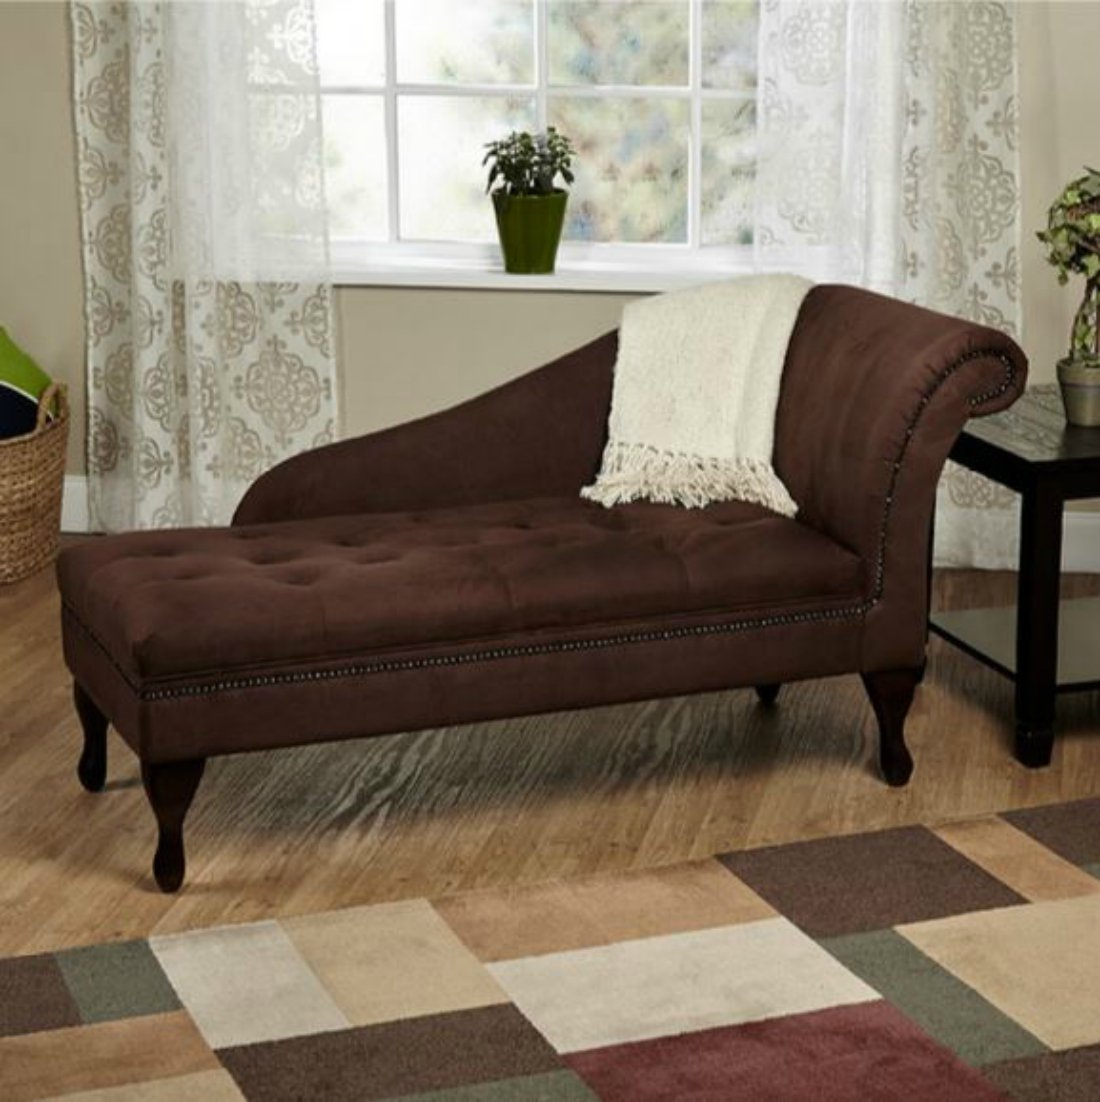 Amazon.com: Modern Storage Chaise Lounge Chair   This Tufted Cushions Is  Microfiber Upholstered   Perfect For Your Living Room, Bedroom, Or Any  Space In ...